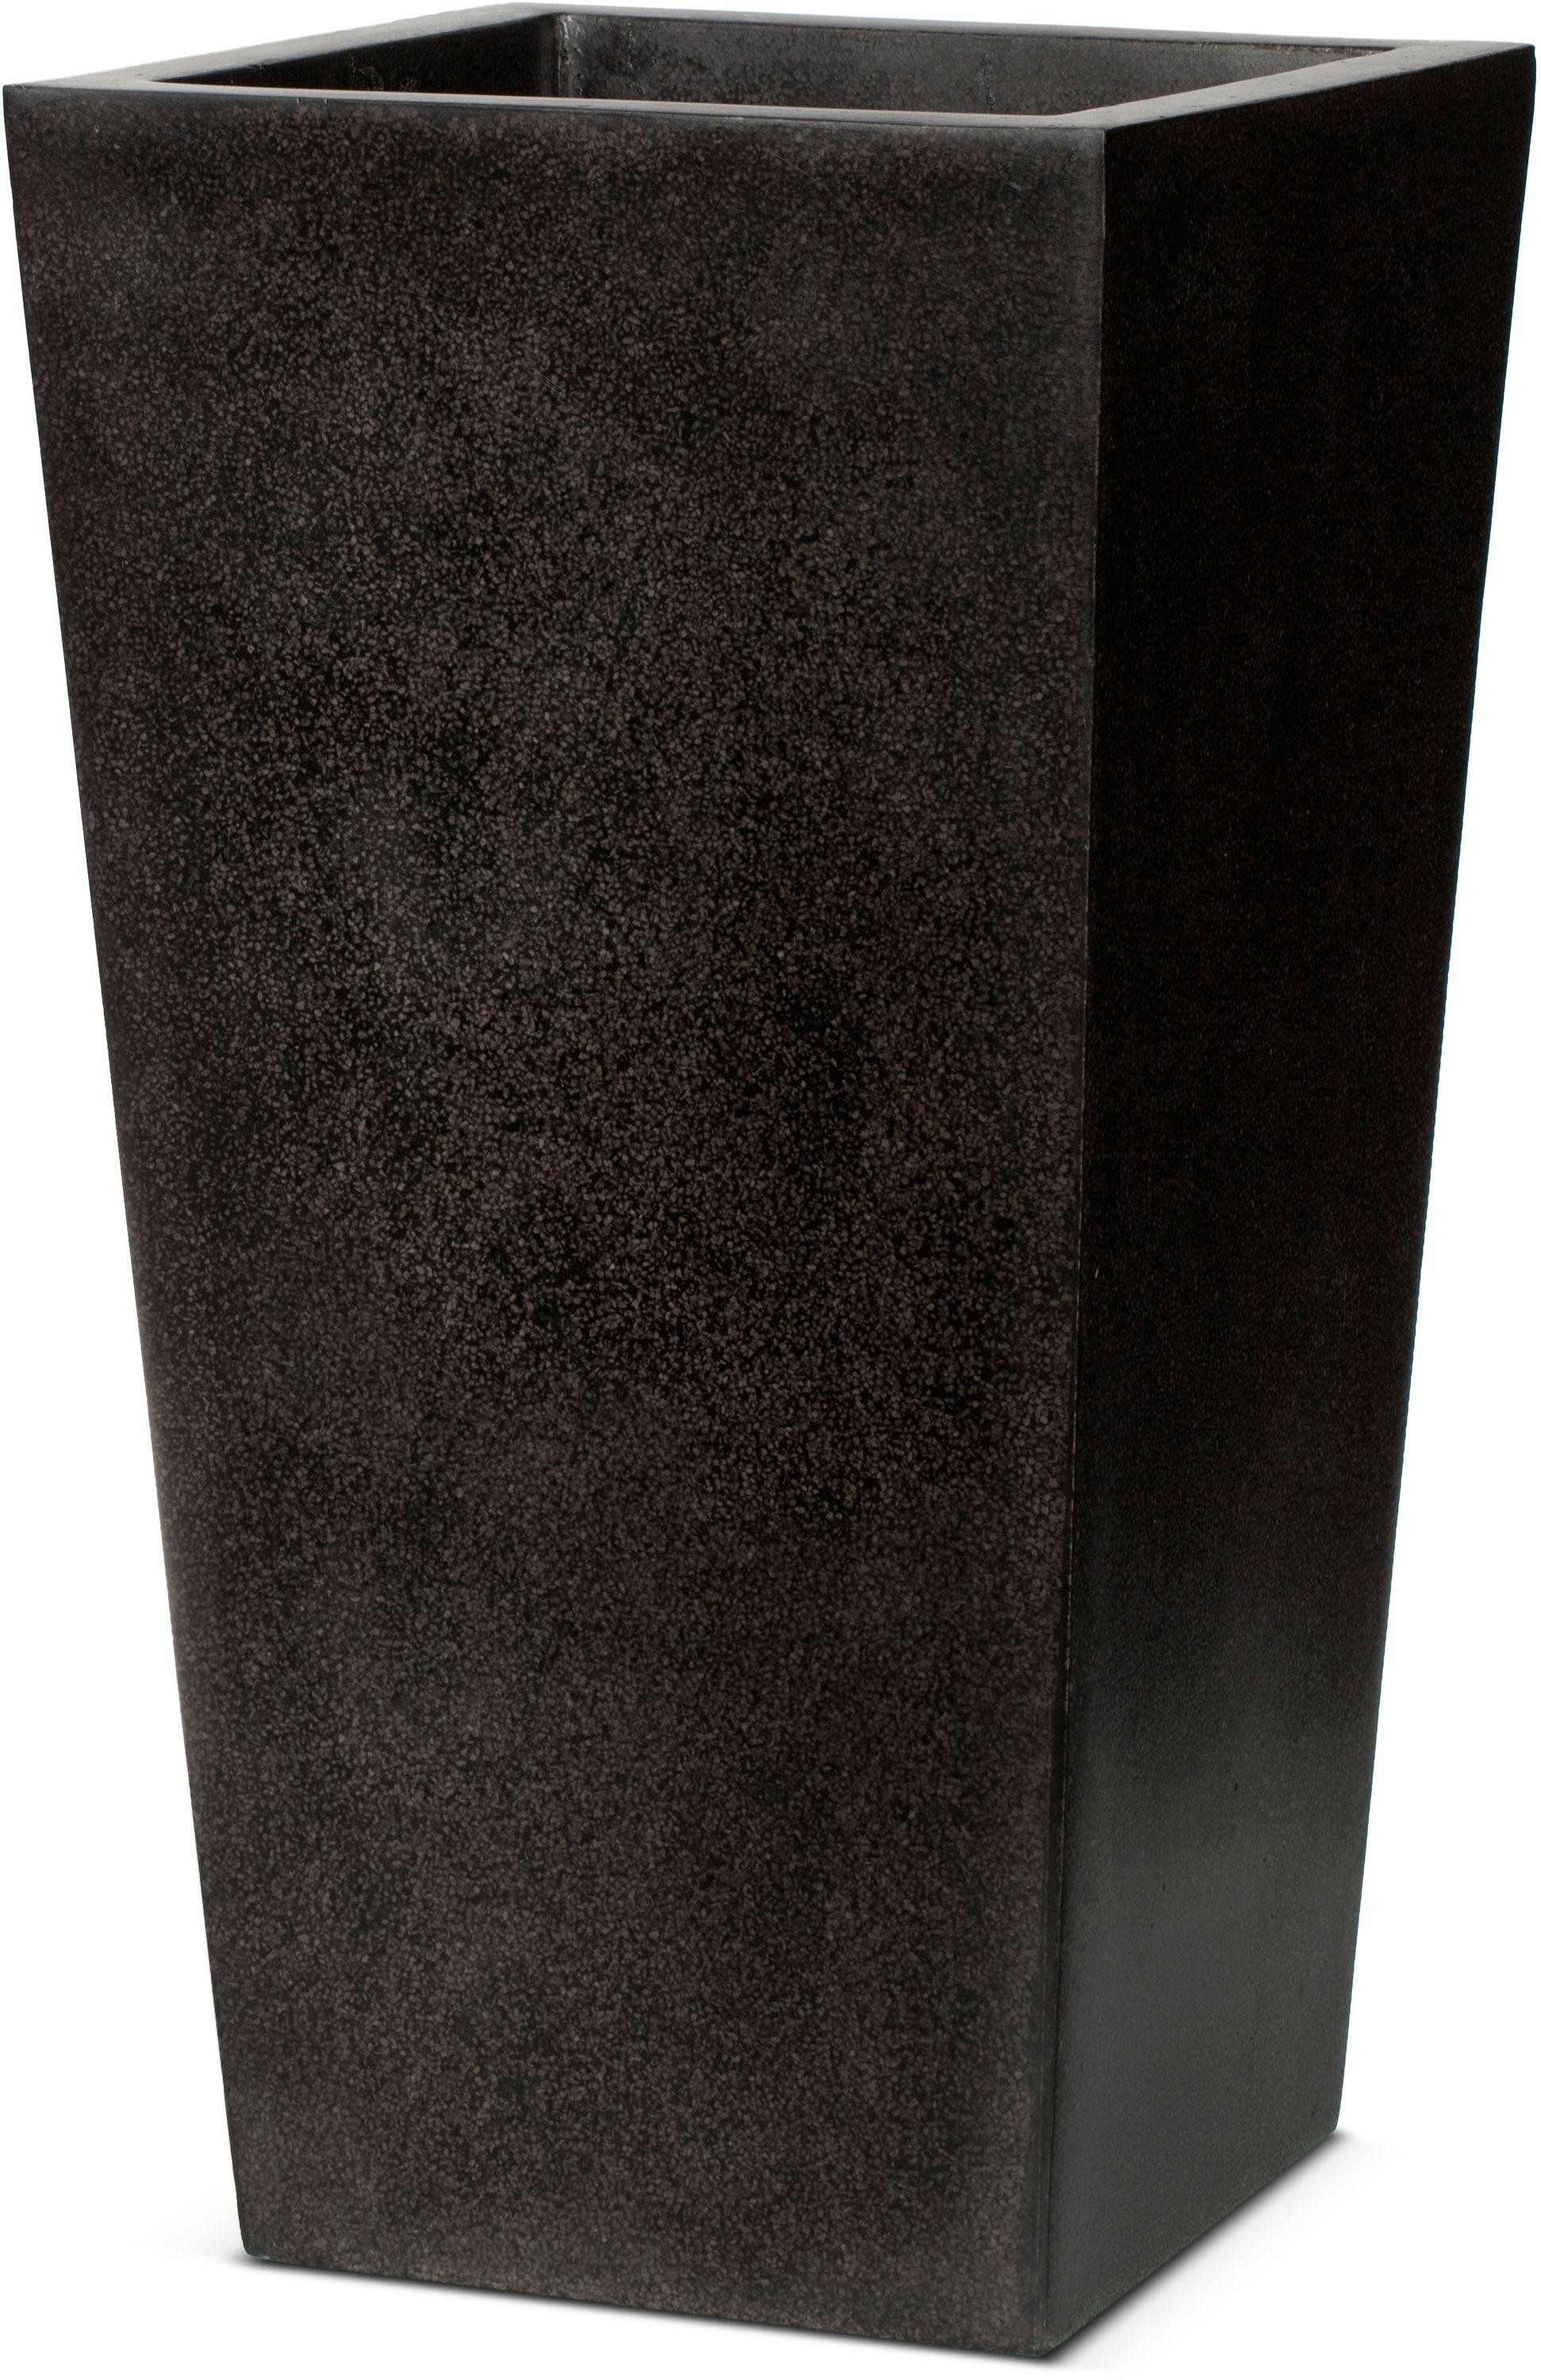 Image of Capi Lux Black Tapered Planter - 24 x 46cm.